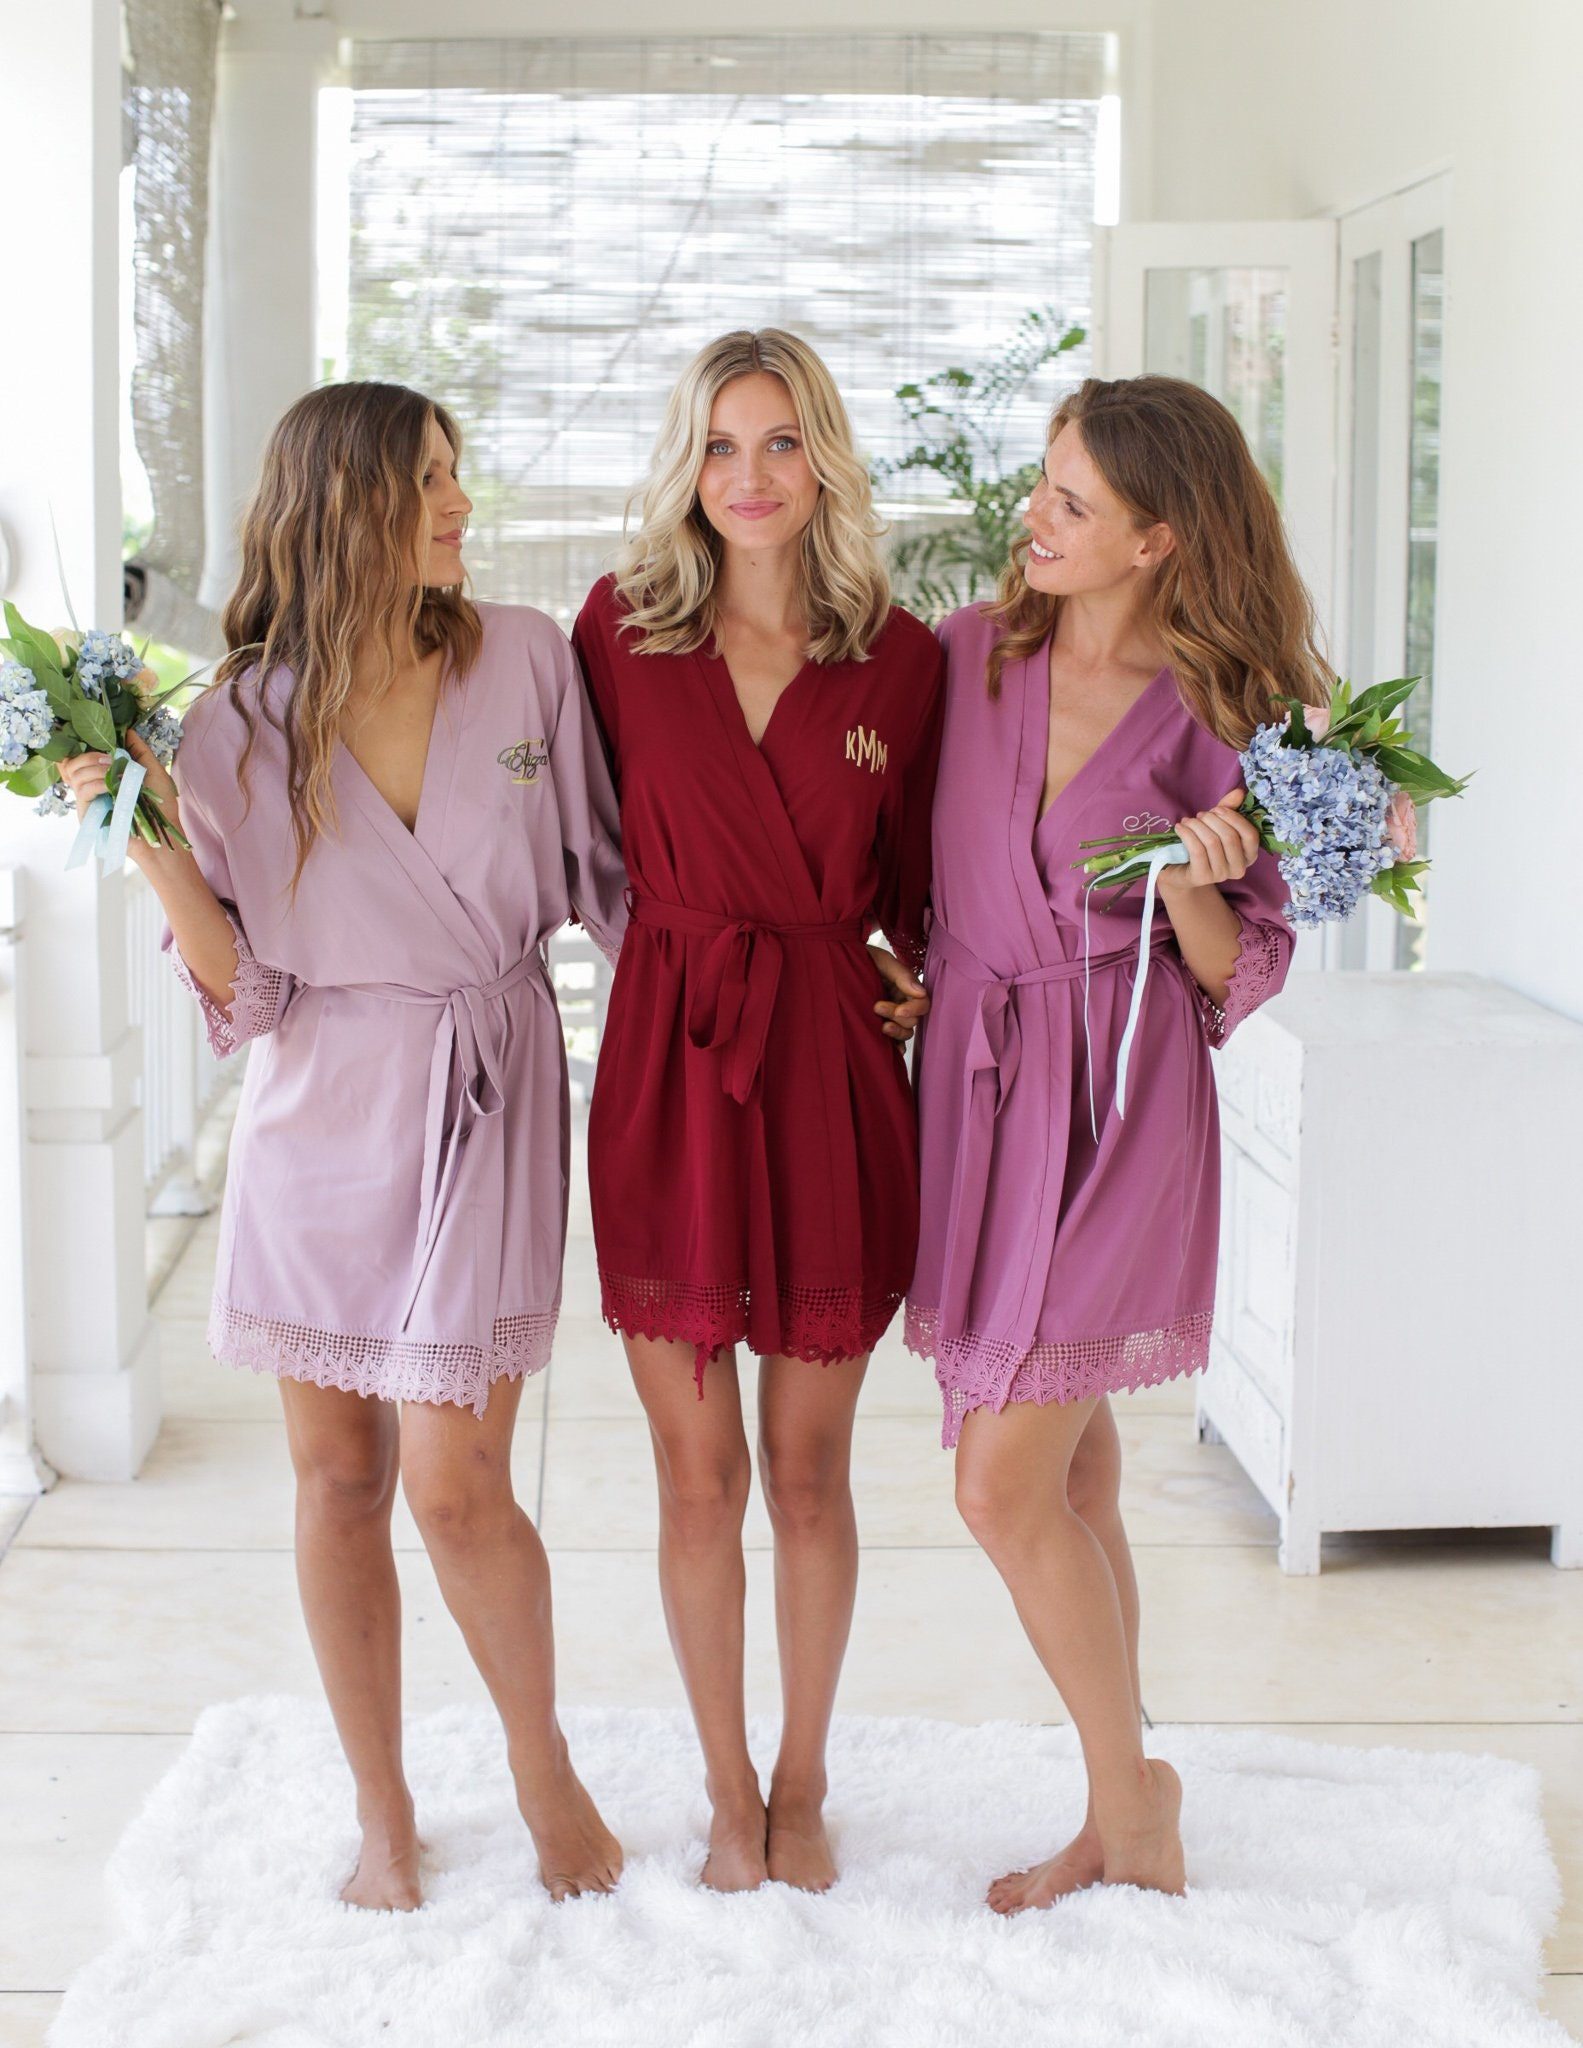 Personalized Bridesmaid Robes Bride Robe Bridal Robes Getting Ready Robe Bridal Shower Wedding Robe Wedding Gift Mother Of The Bride